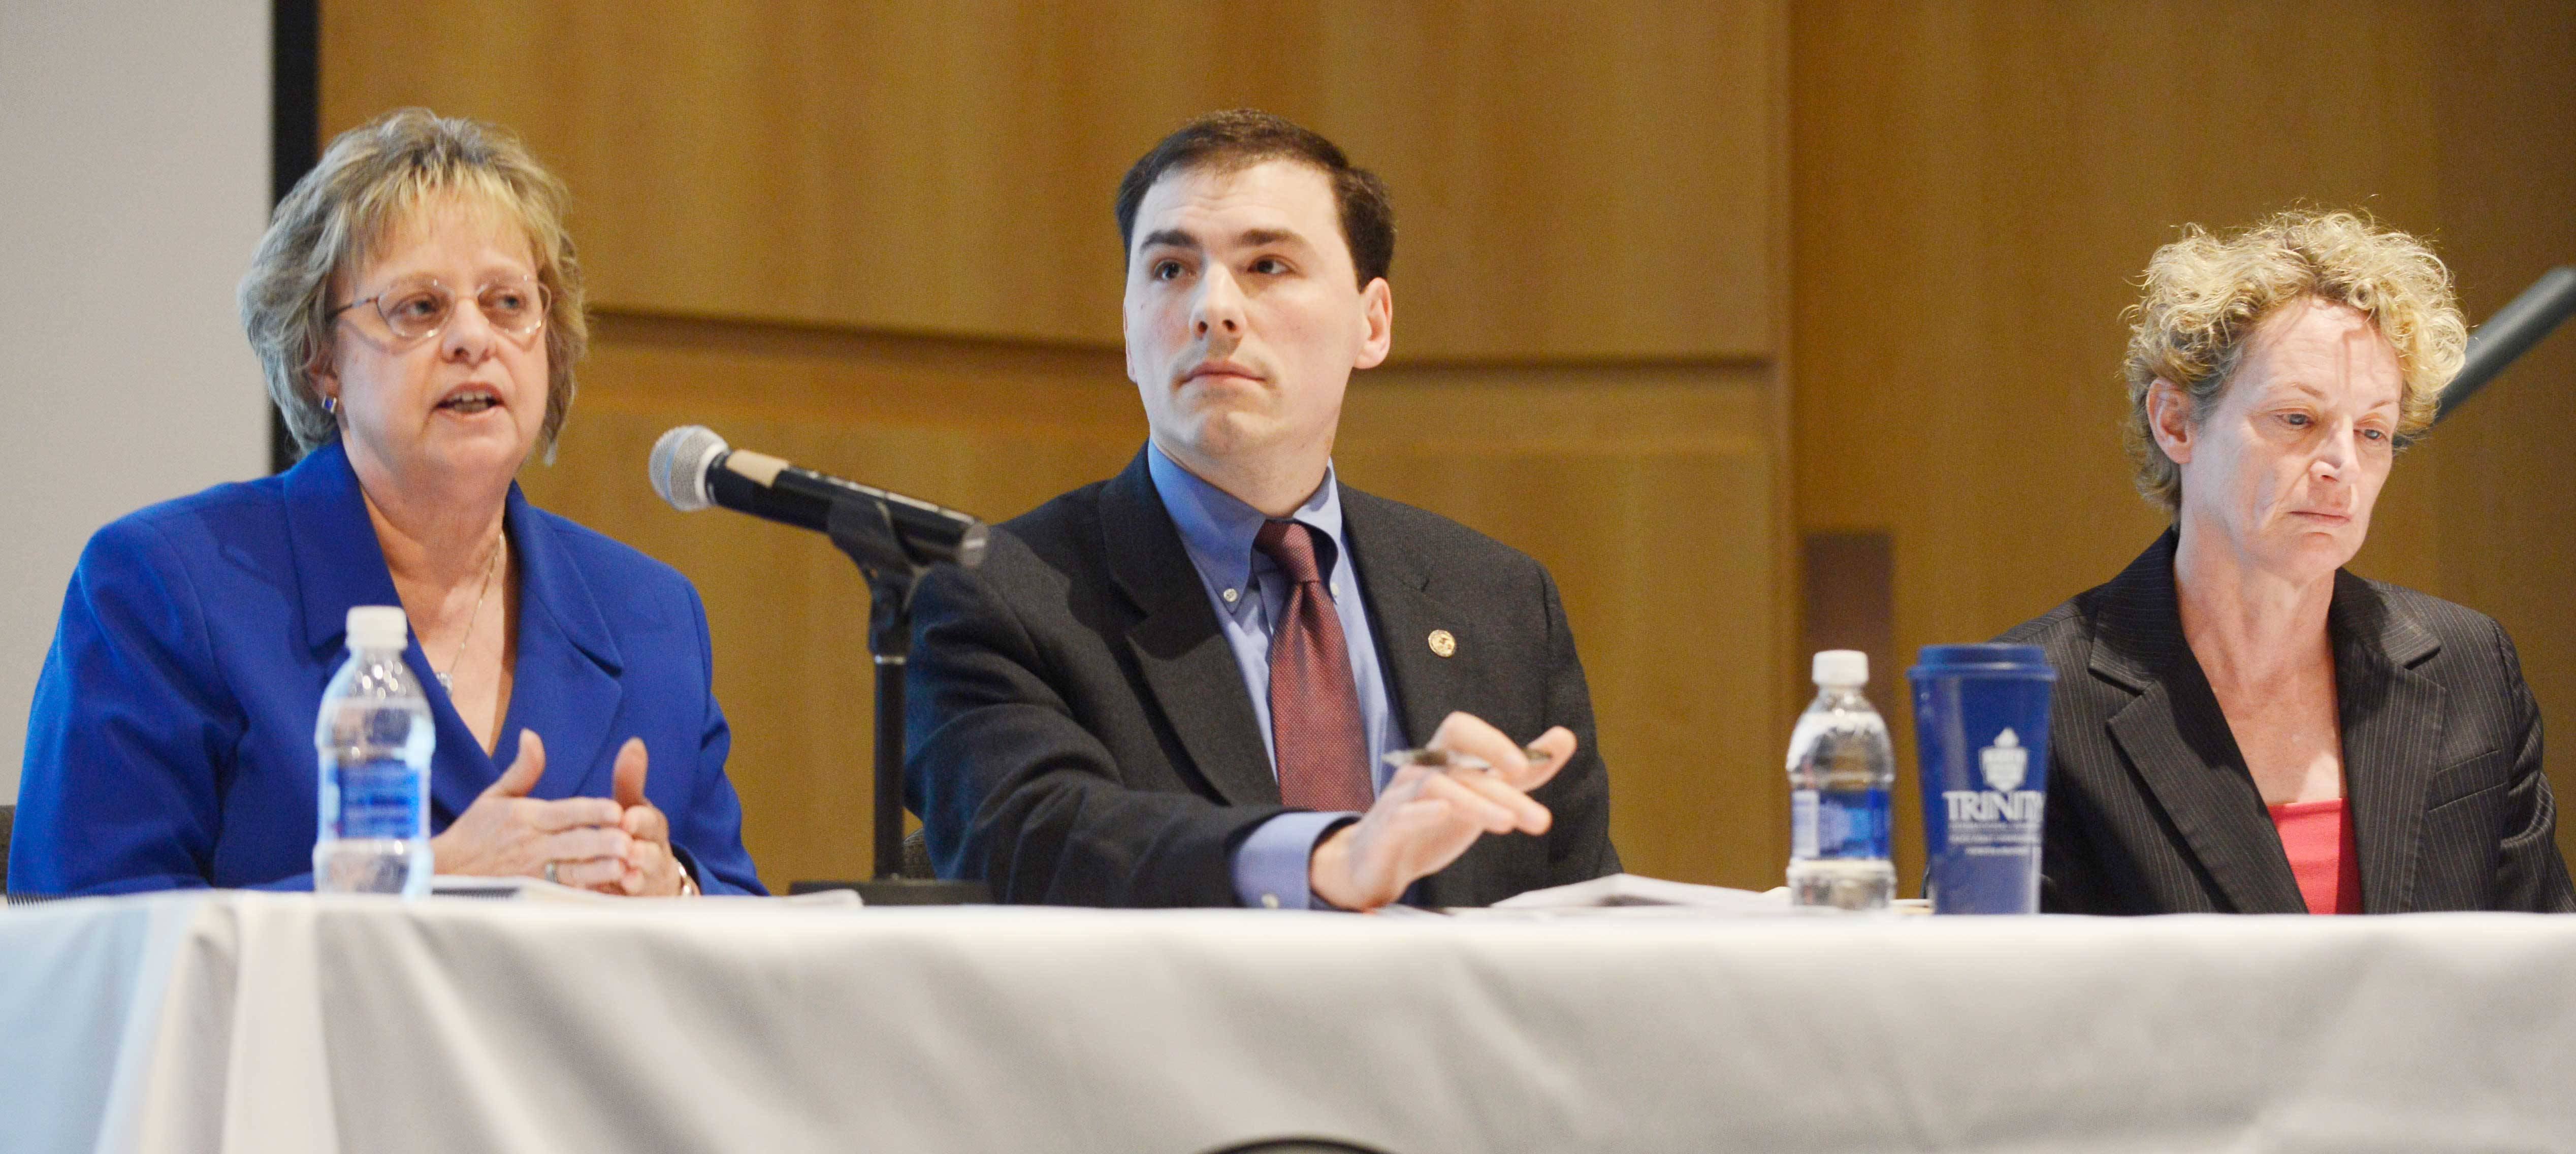 Stakeholders debate state pension reform at Palatine forum